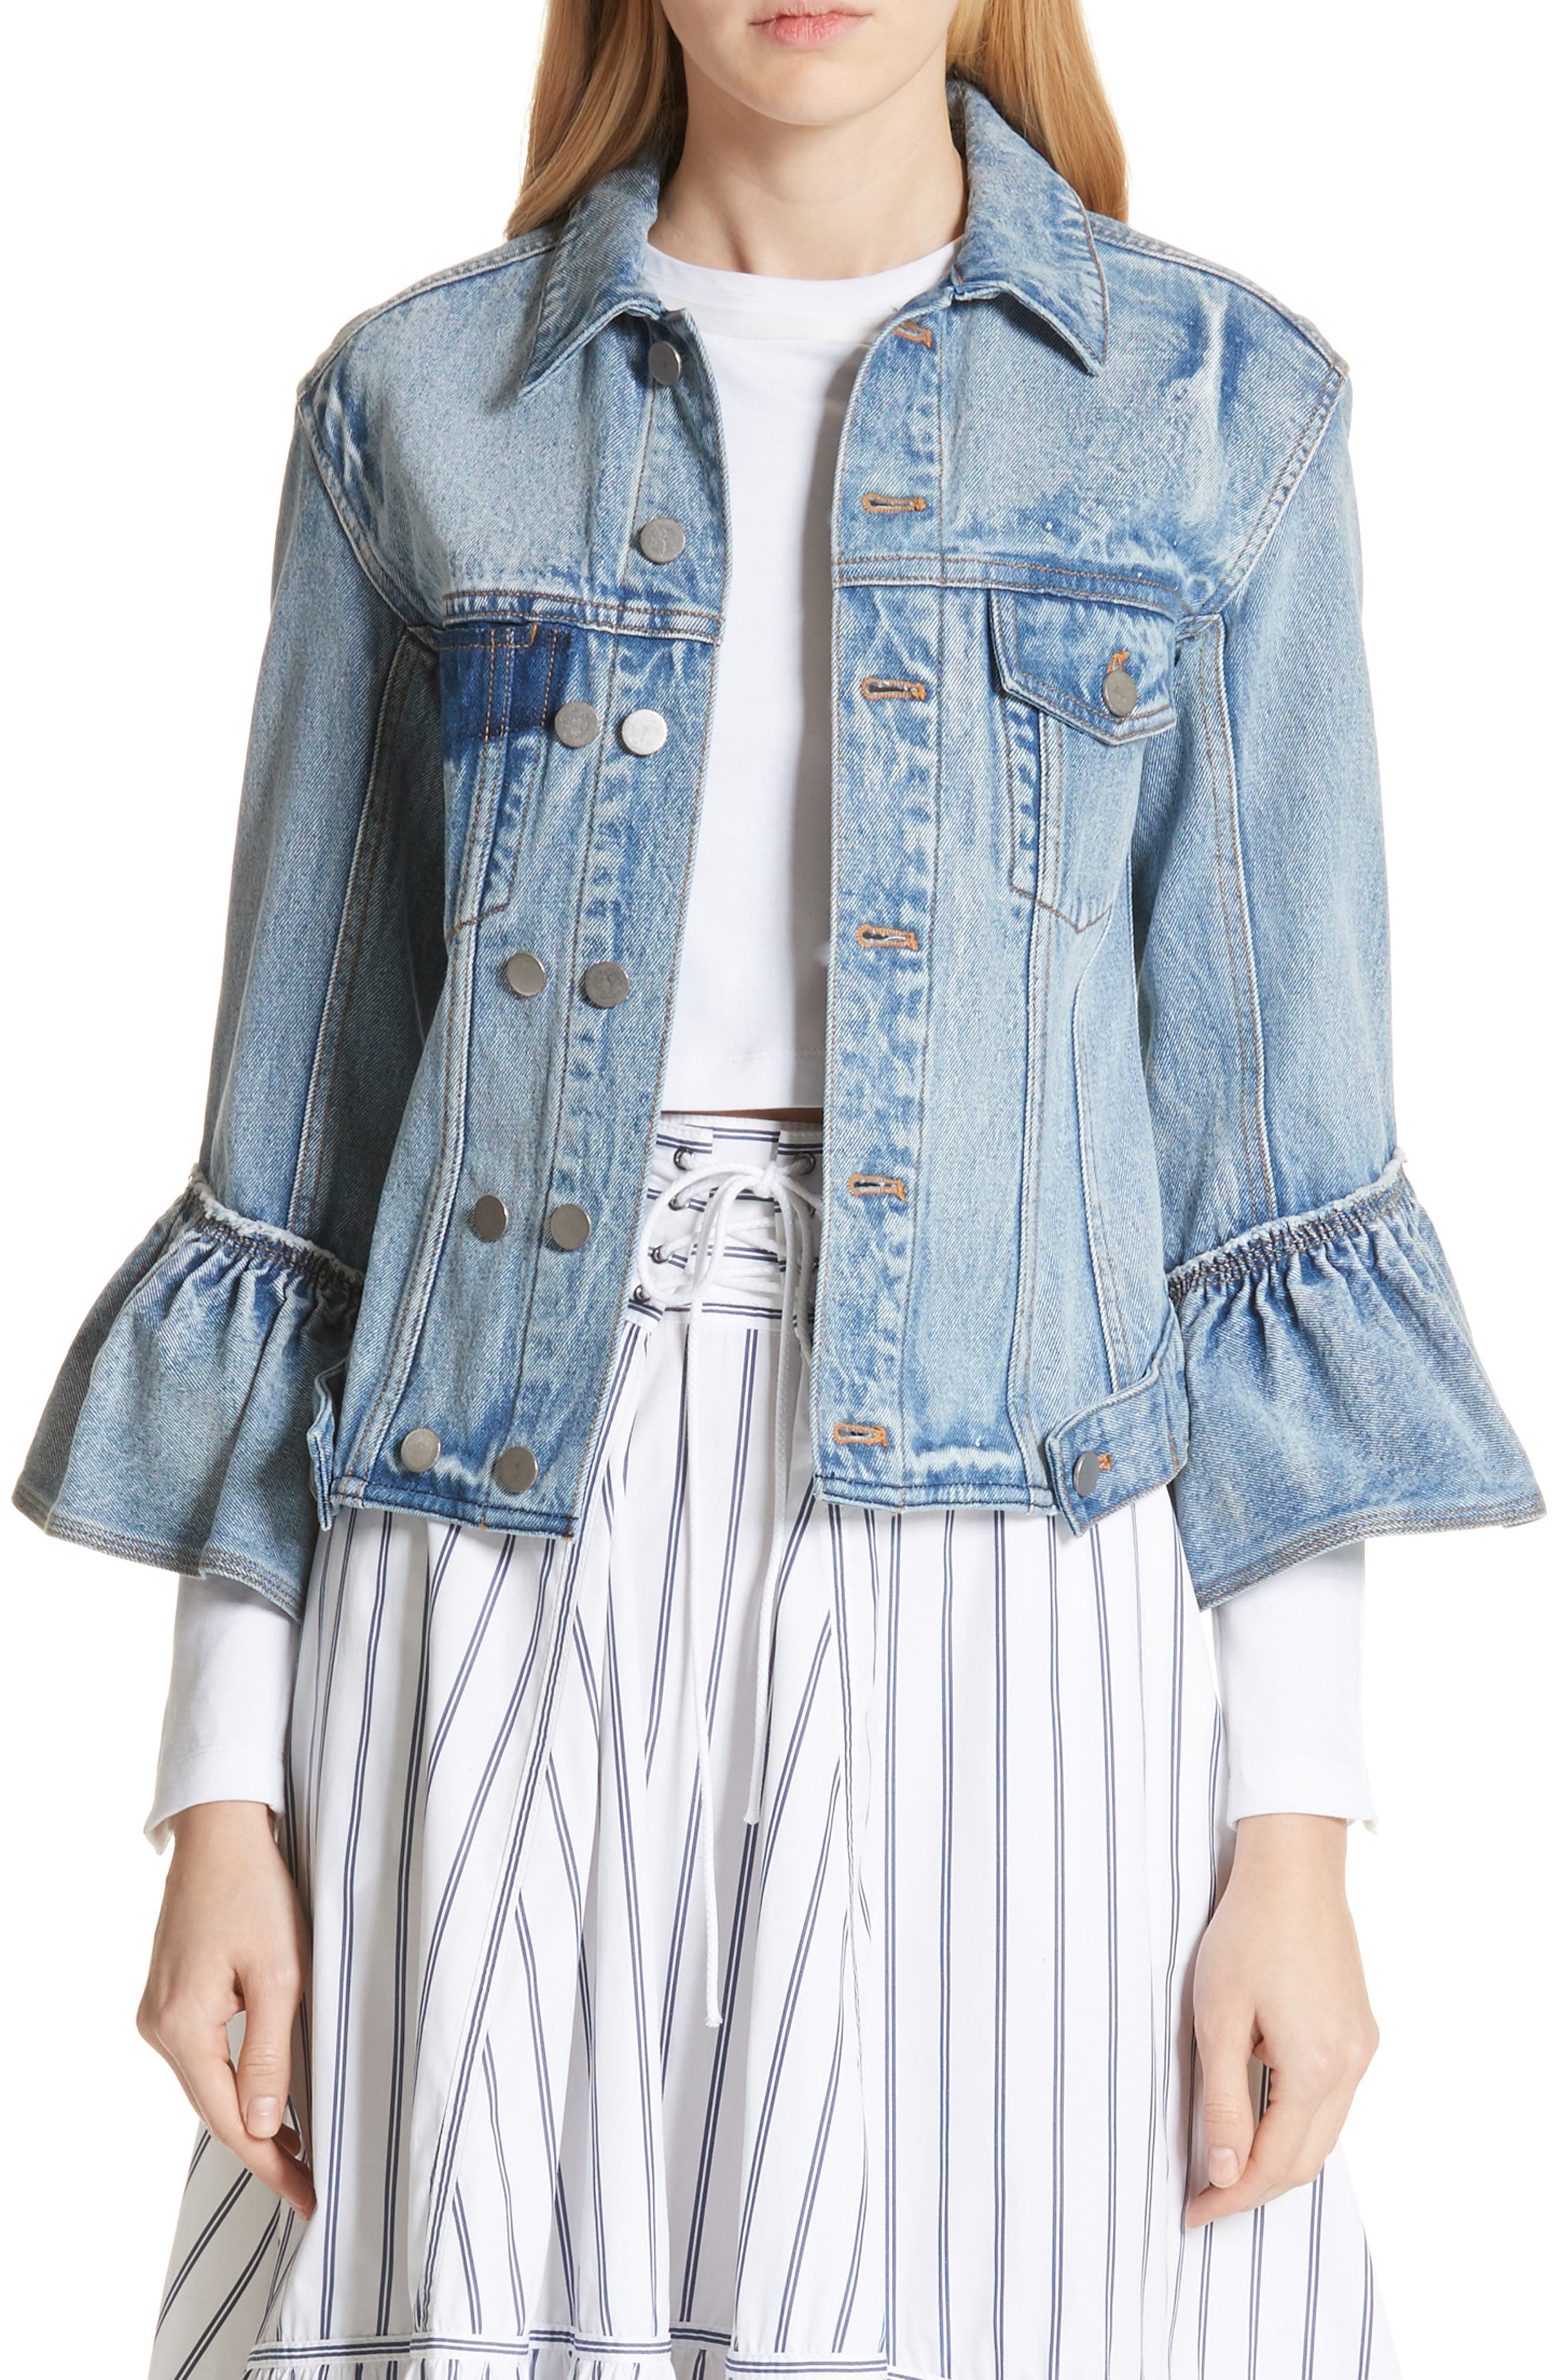 3.1 Phillip Lim Ruffle Cuff Denim Jacket